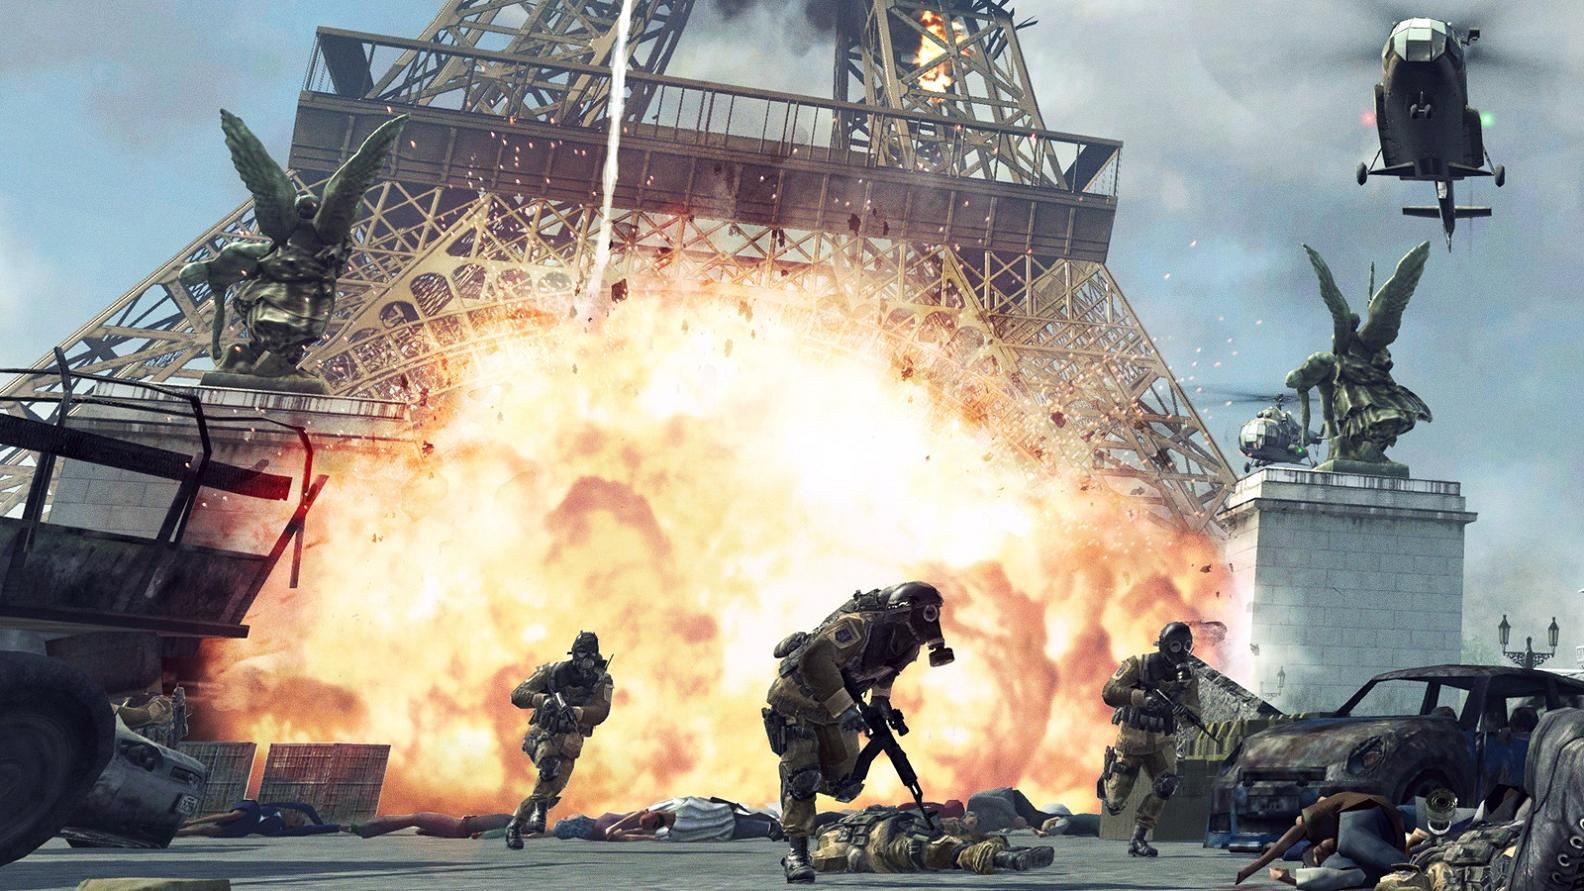 Call-of-Duty-Modern-Warfare-3-Paris-noooo.jpg